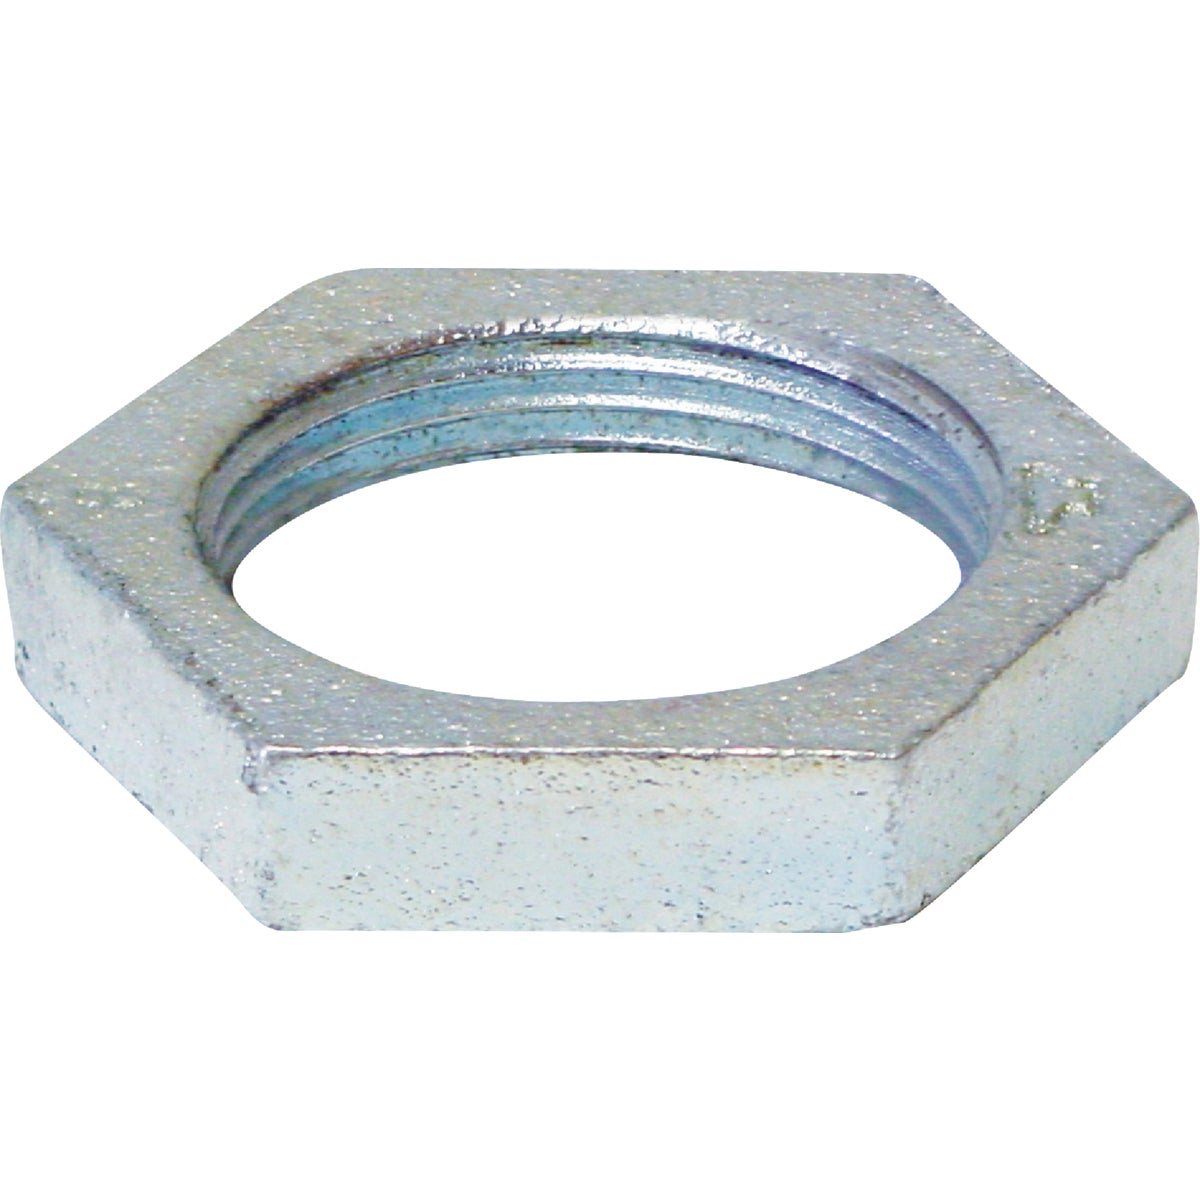 "1"" GALV LOCKNUT - 8700162608 by Anvil International"